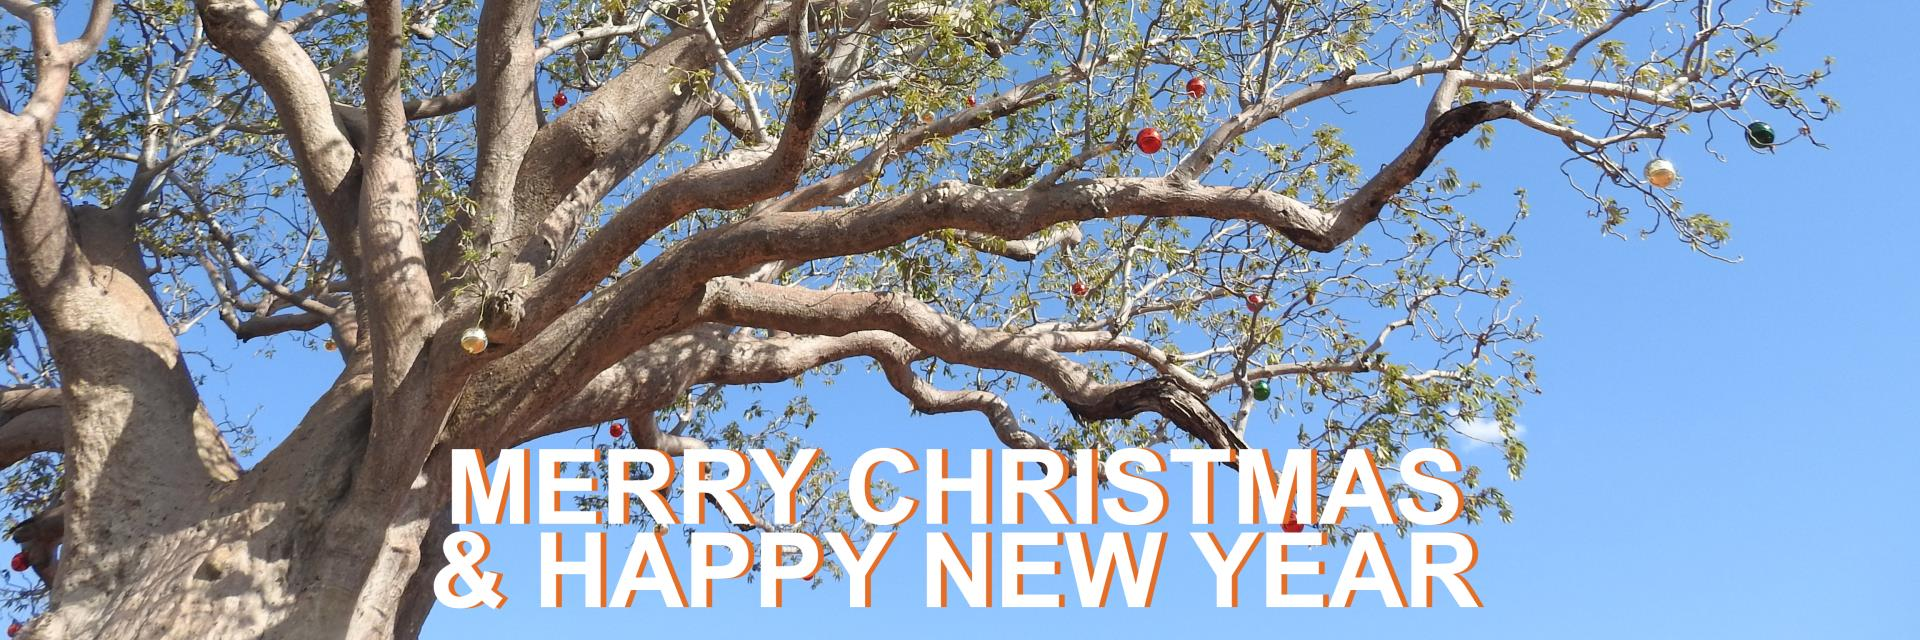 Shire President's Christmas Message